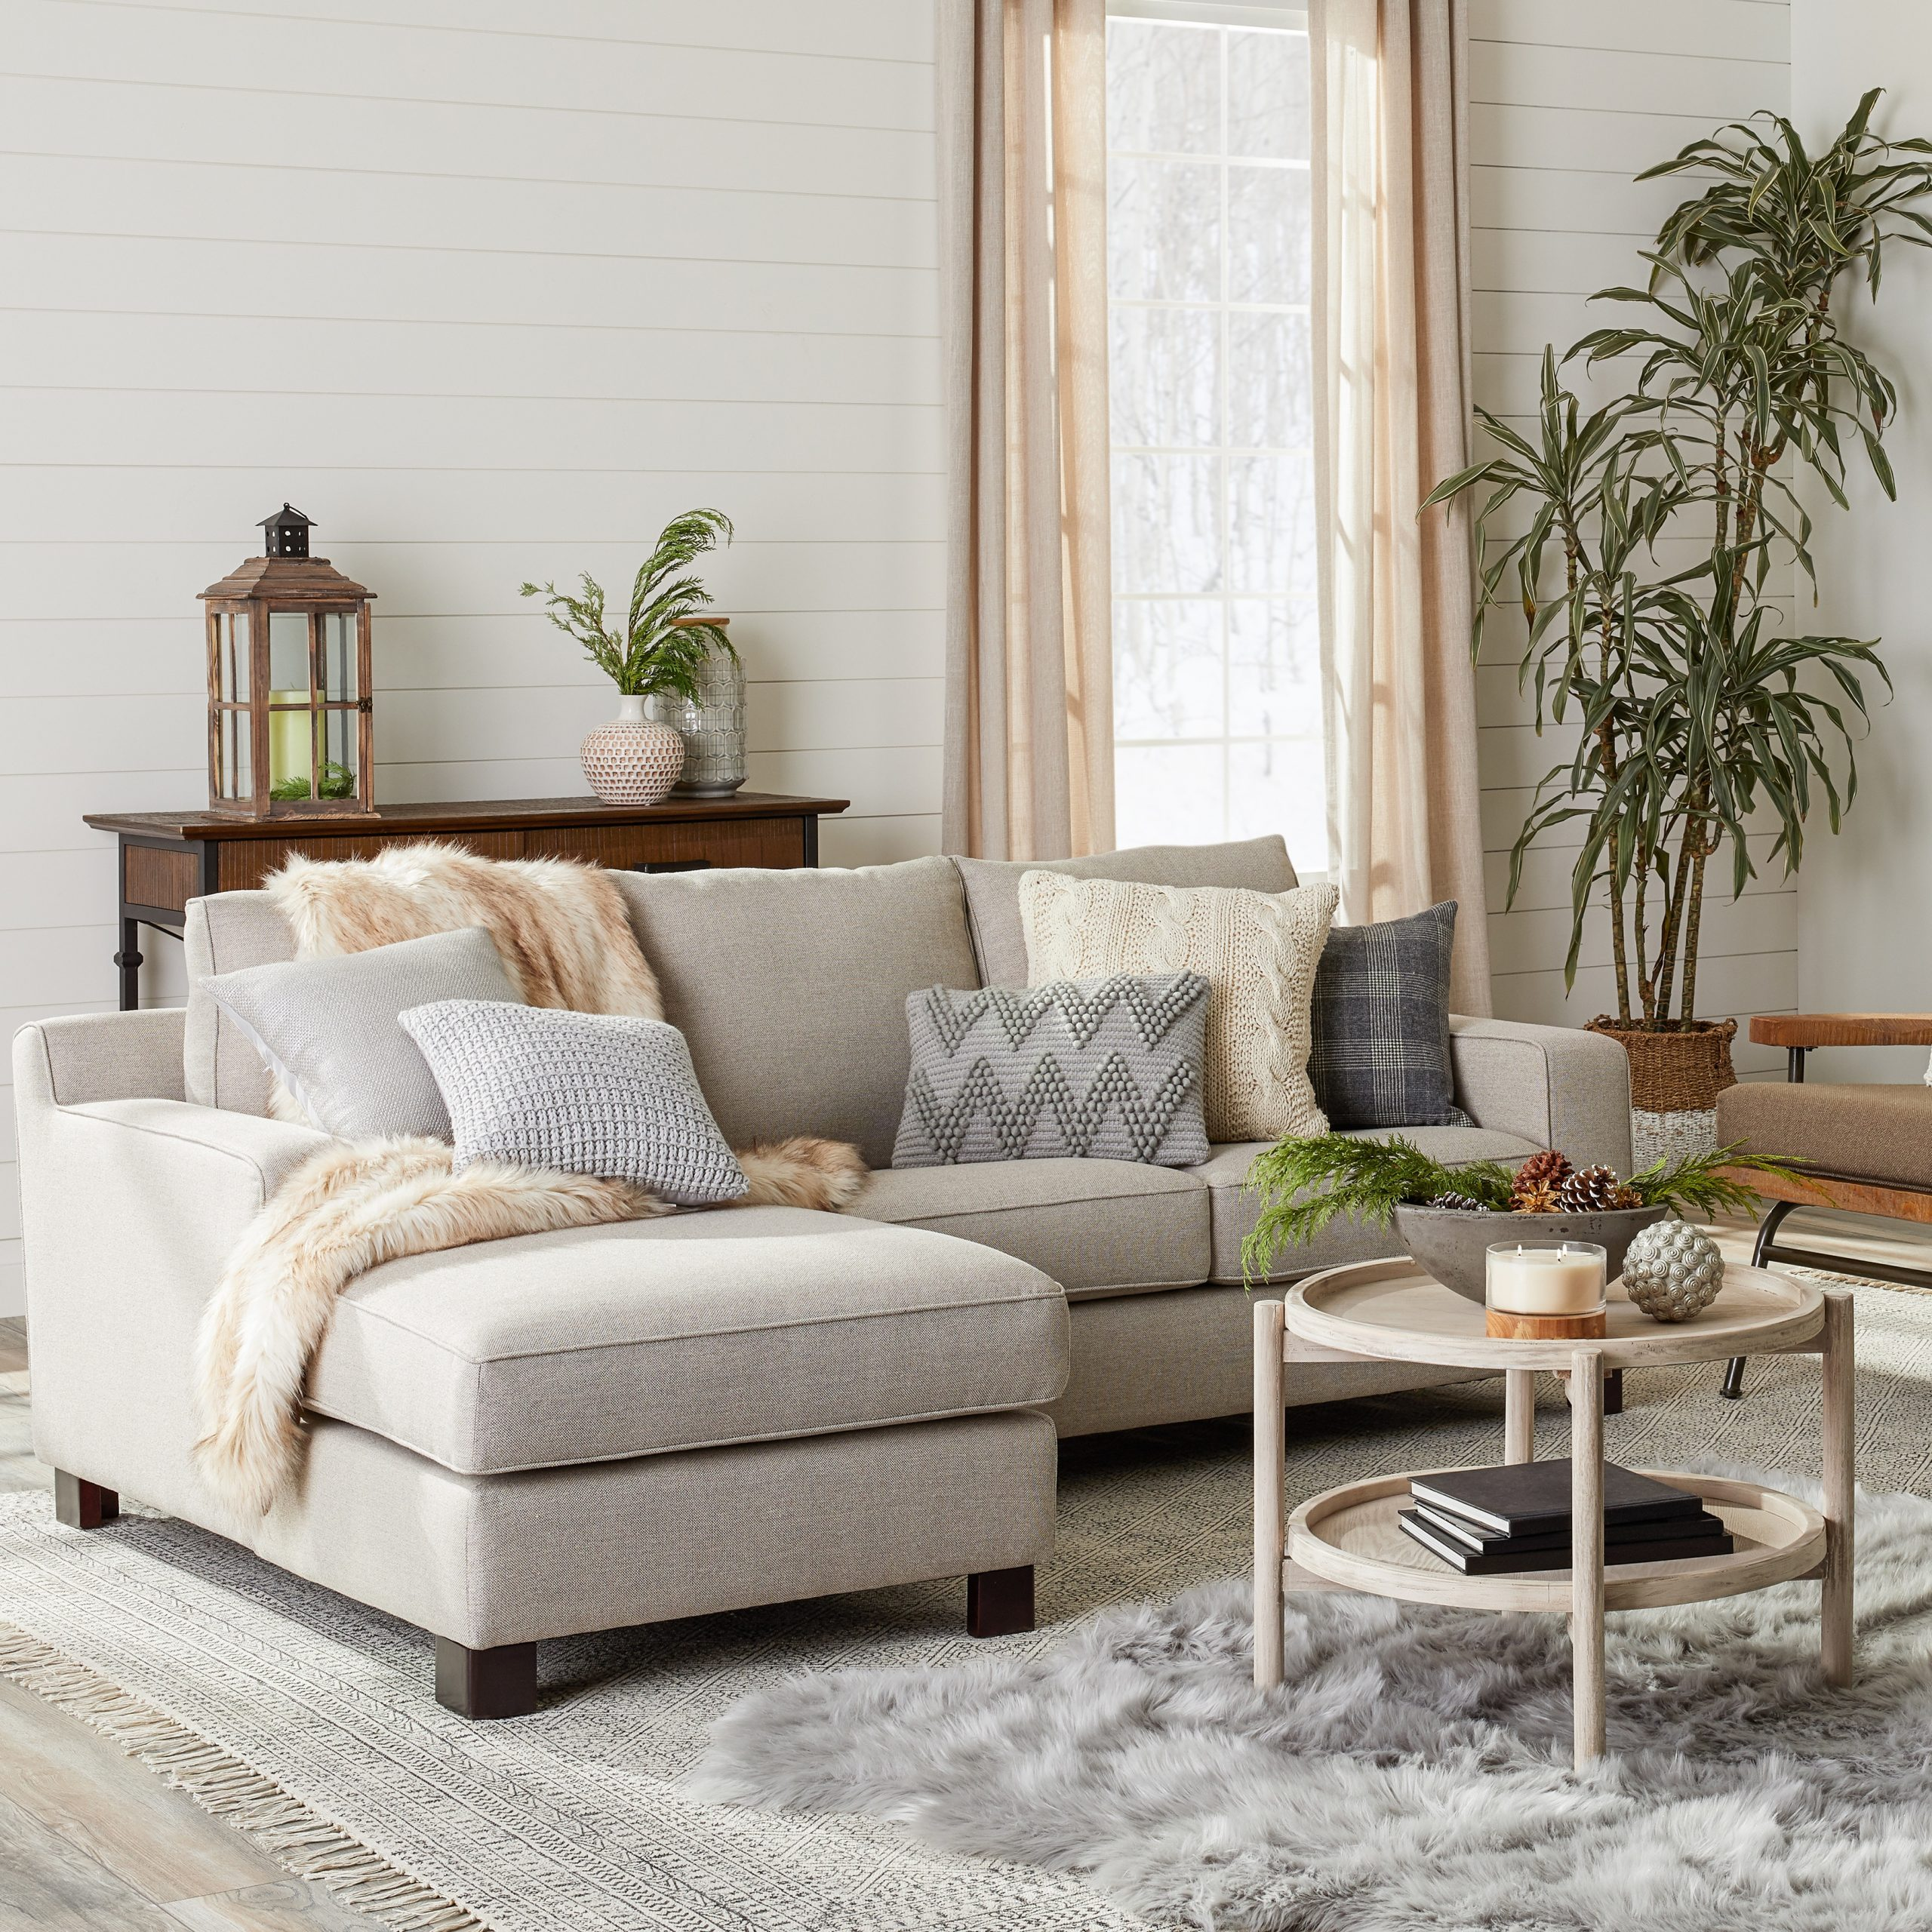 Fashionable Gray Tweed Sectional Sofa Dante Sectional Sofa With Chaise Within 2pc Crowningshield Contemporary Chaise Sofas Light Gray (View 11 of 20)